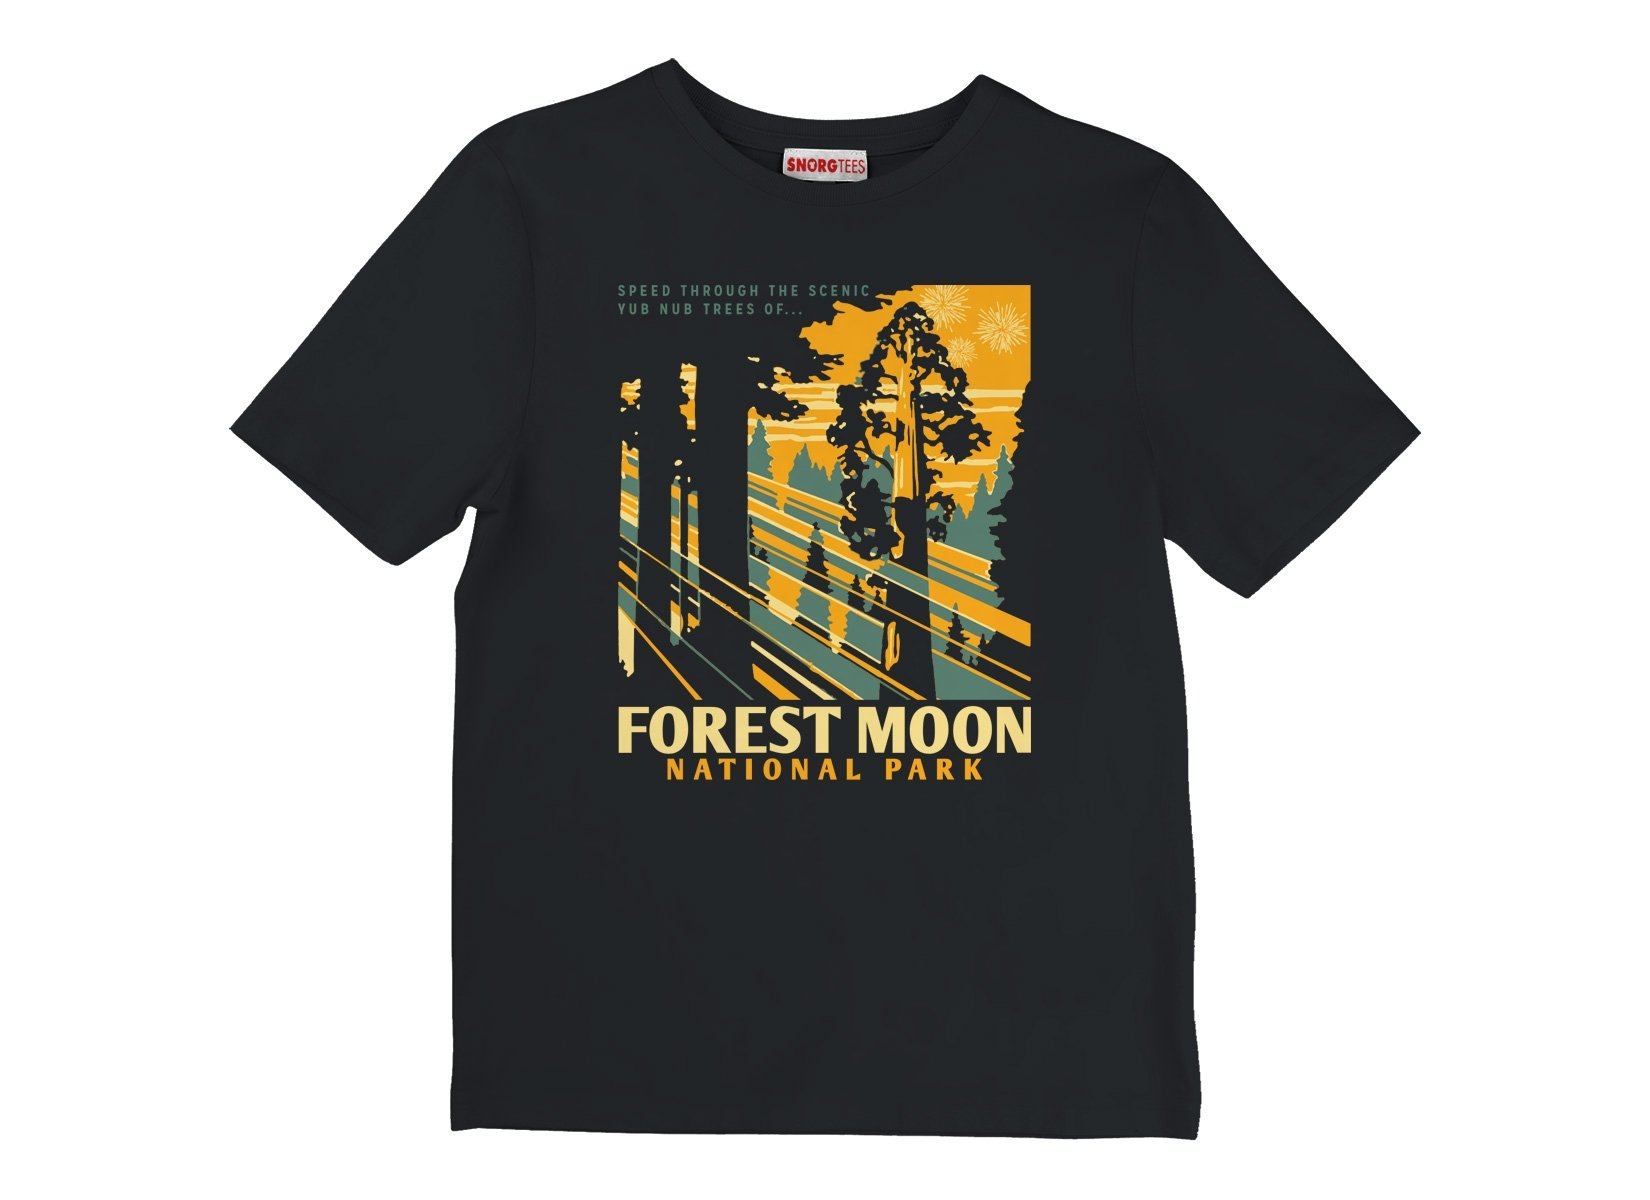 Forest Moon National Park on Kids T-Shirt